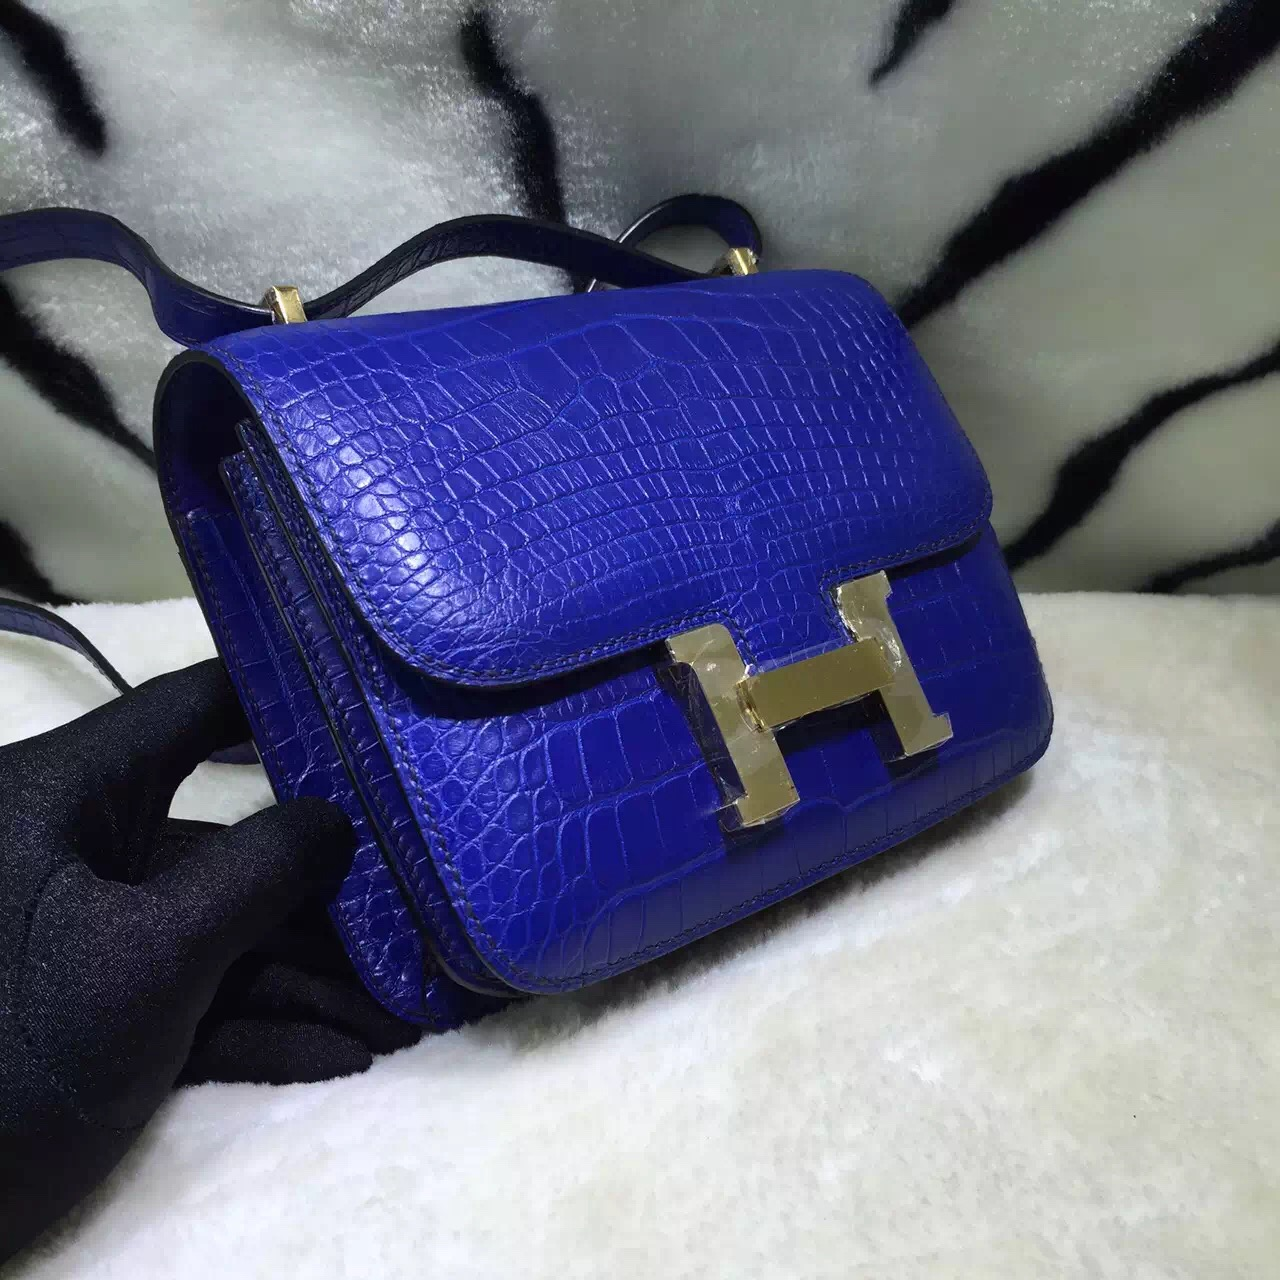 Hand Stitching Hermes 7T Blue Electric Crocodile Skin Leather Constance Bag 19CM